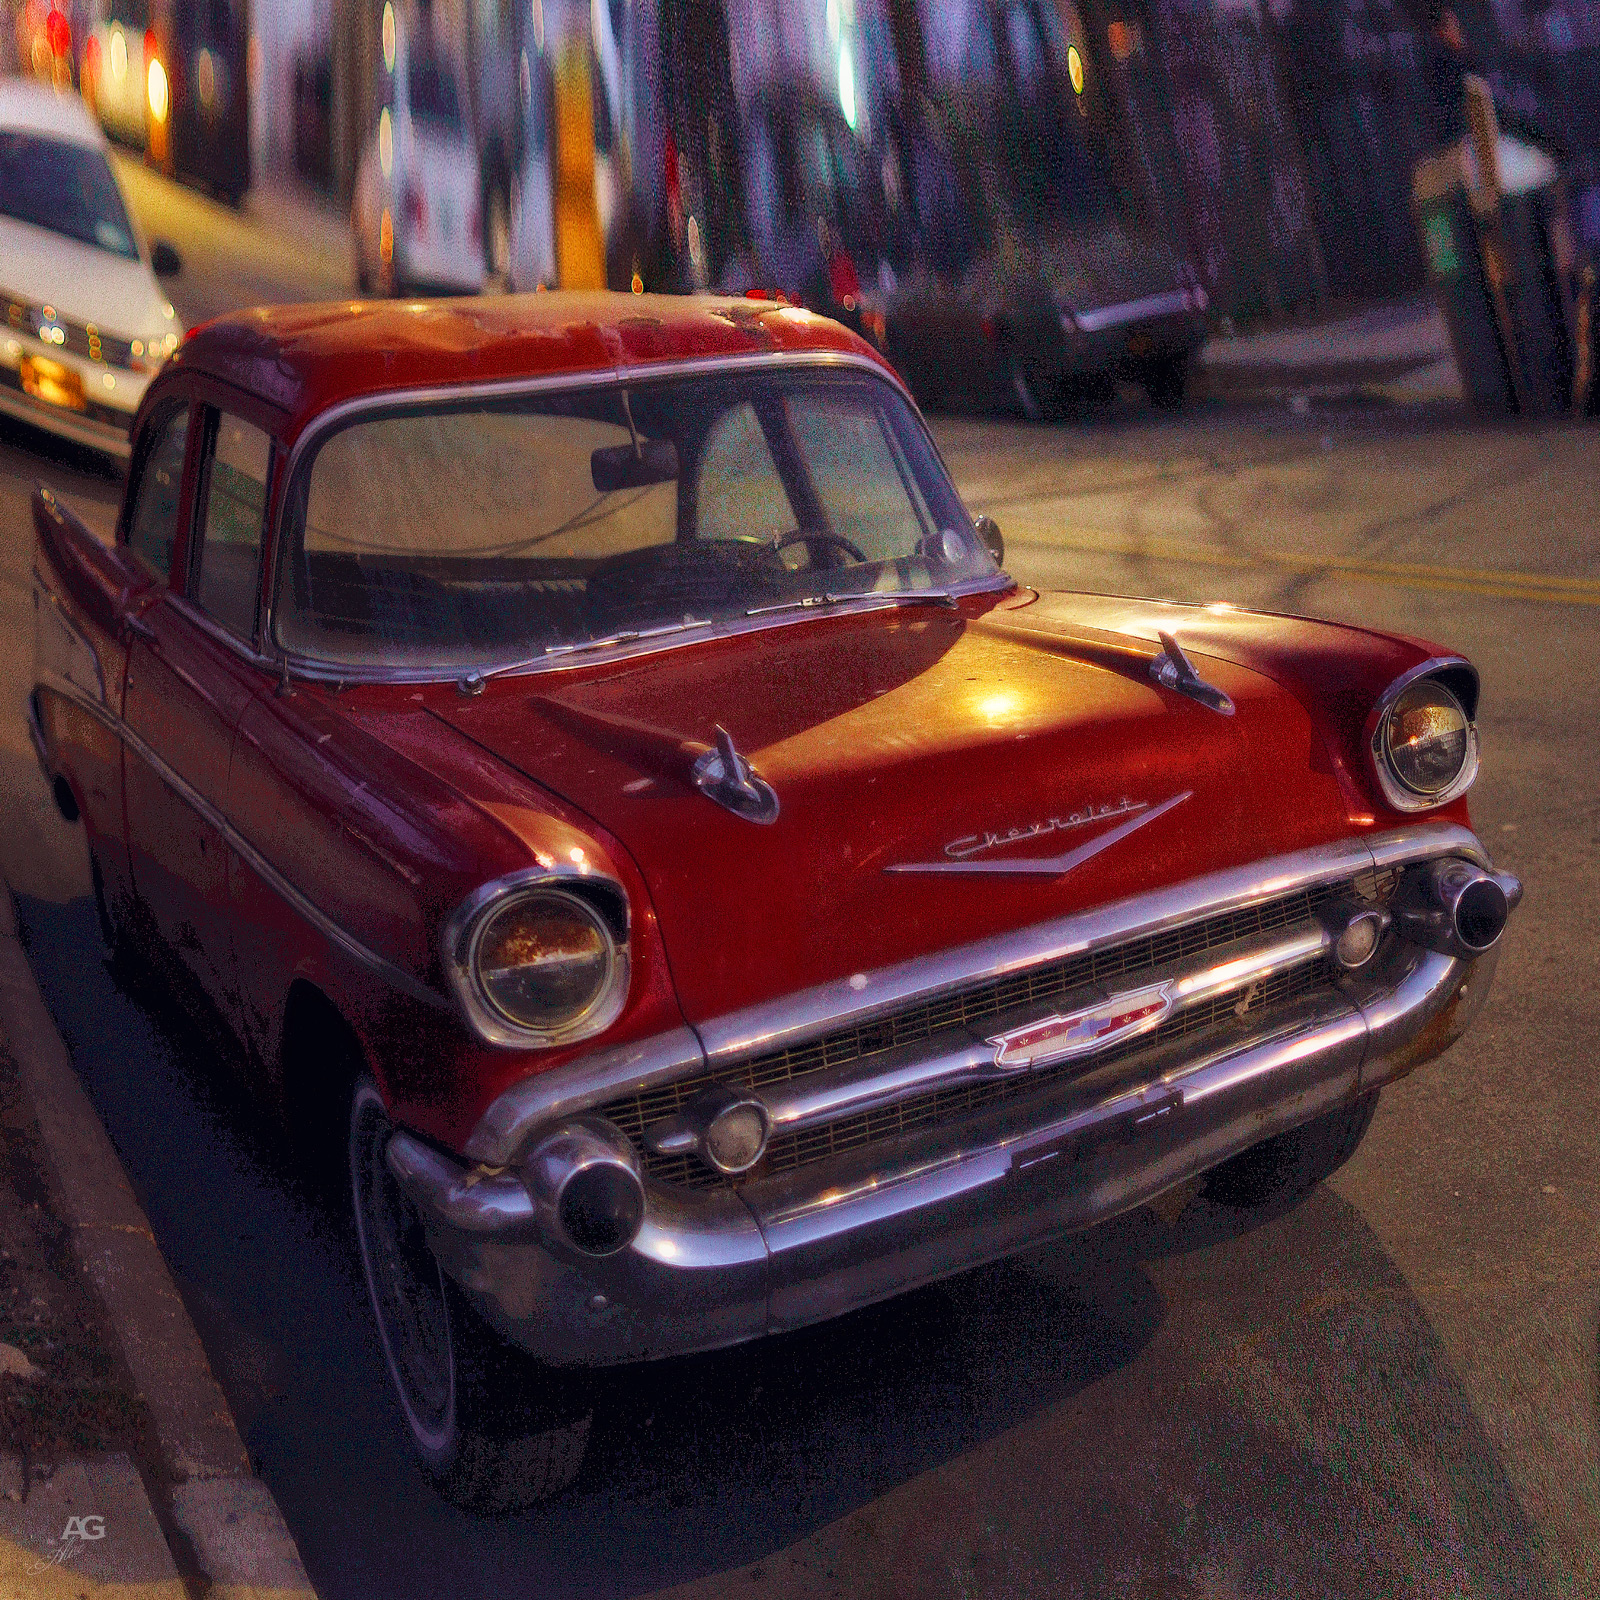 VIntageRedChevroletOnStreetsOfBrooklynFront_warped_1600